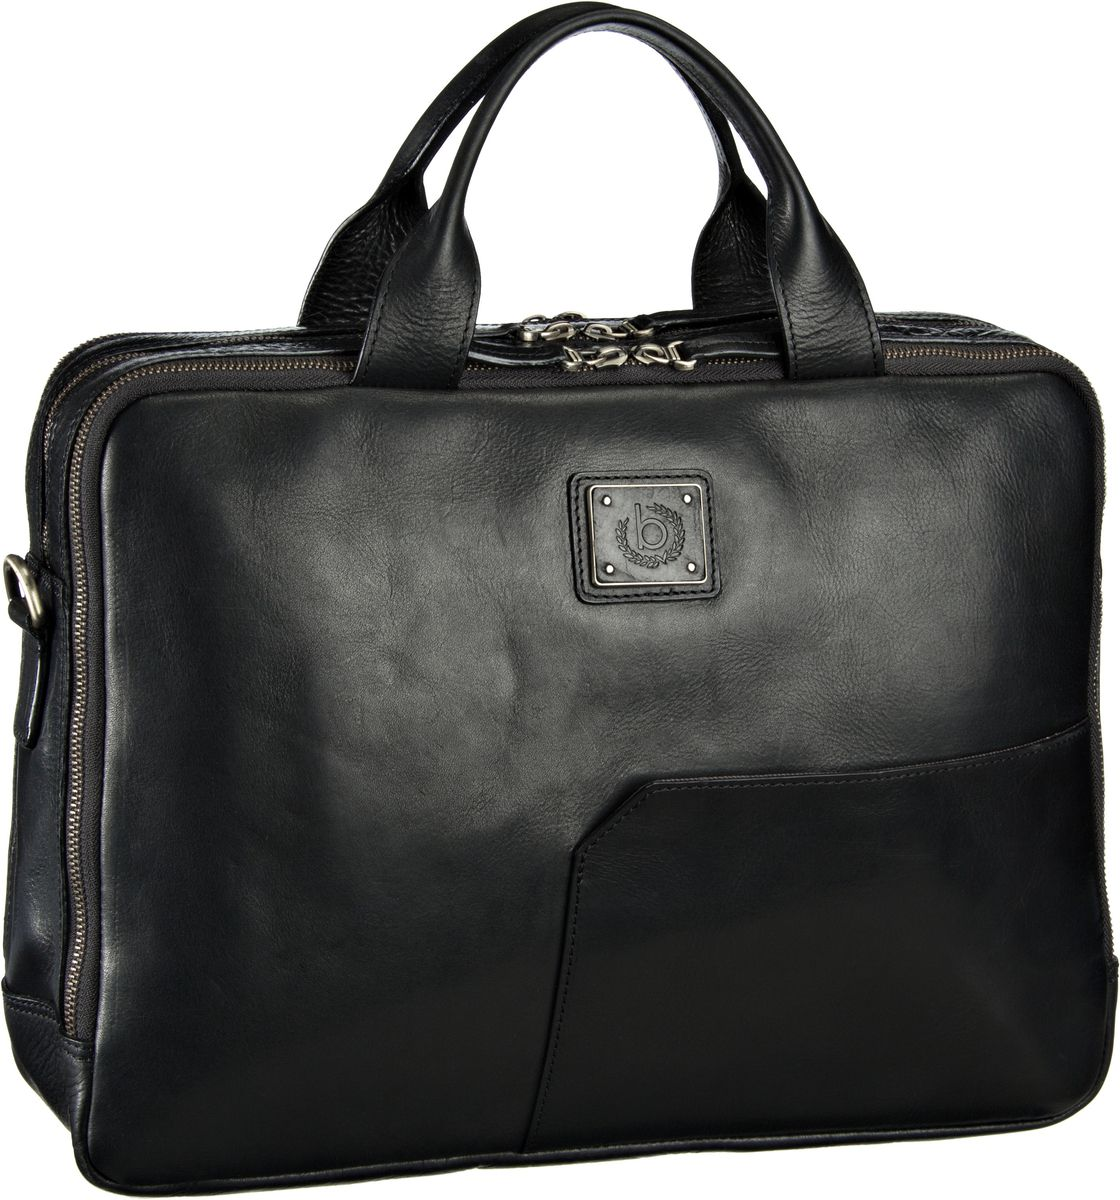 Bugatti Tocco Brief Bag Schwarz - Aktentasche